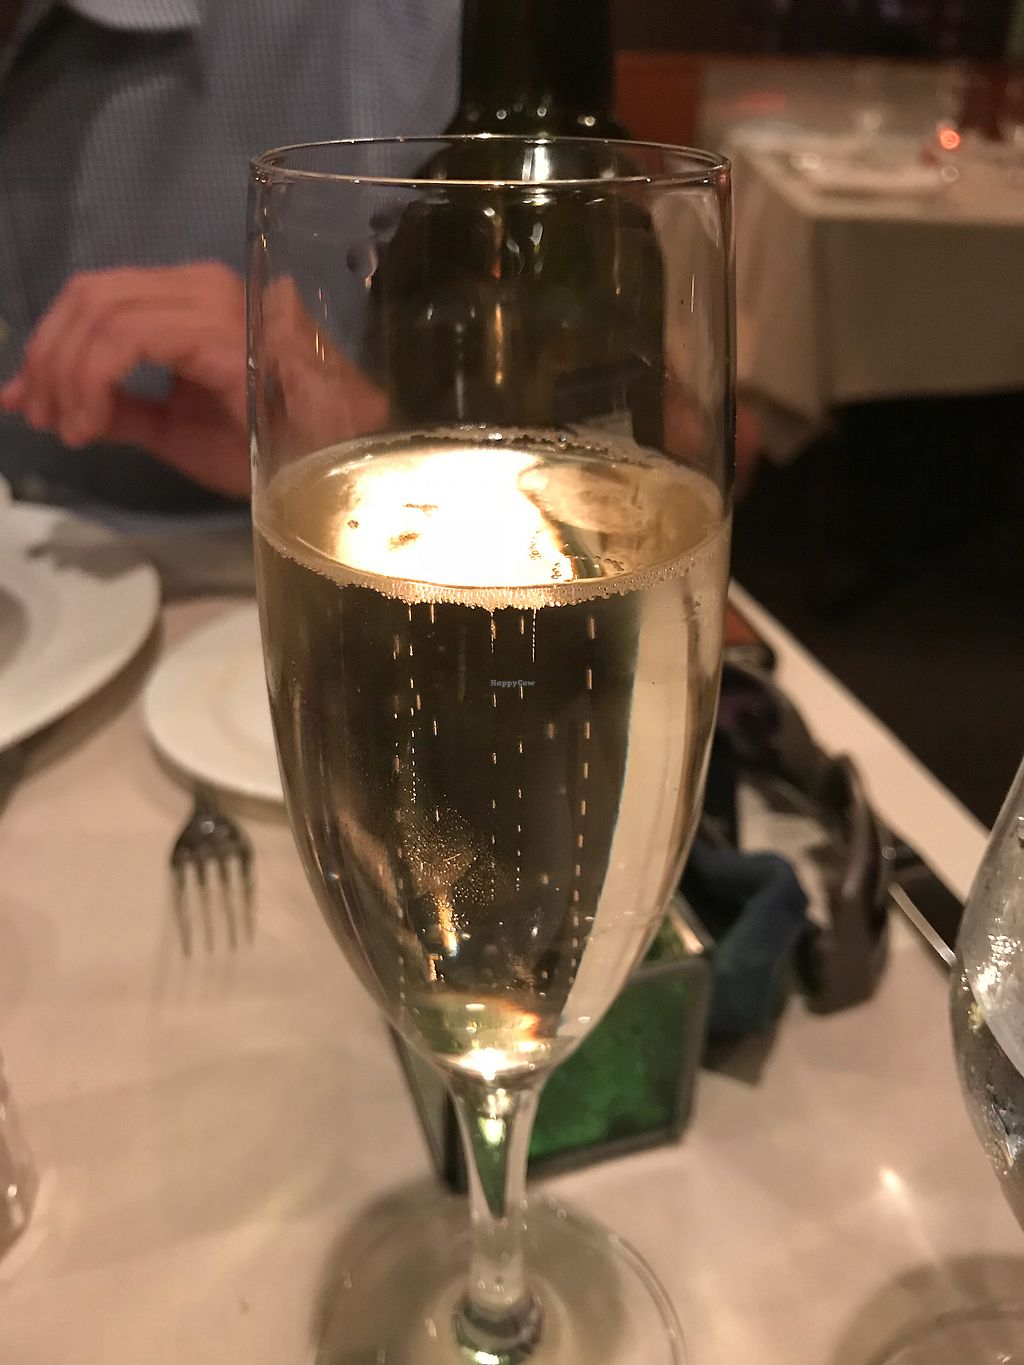 """Photo of Cedar Restaurant  by <a href=""""/members/profile/Frostyfro"""">Frostyfro</a> <br/>Great cocktails too! <br/> October 8, 2017  - <a href='/contact/abuse/image/47991/313278'>Report</a>"""